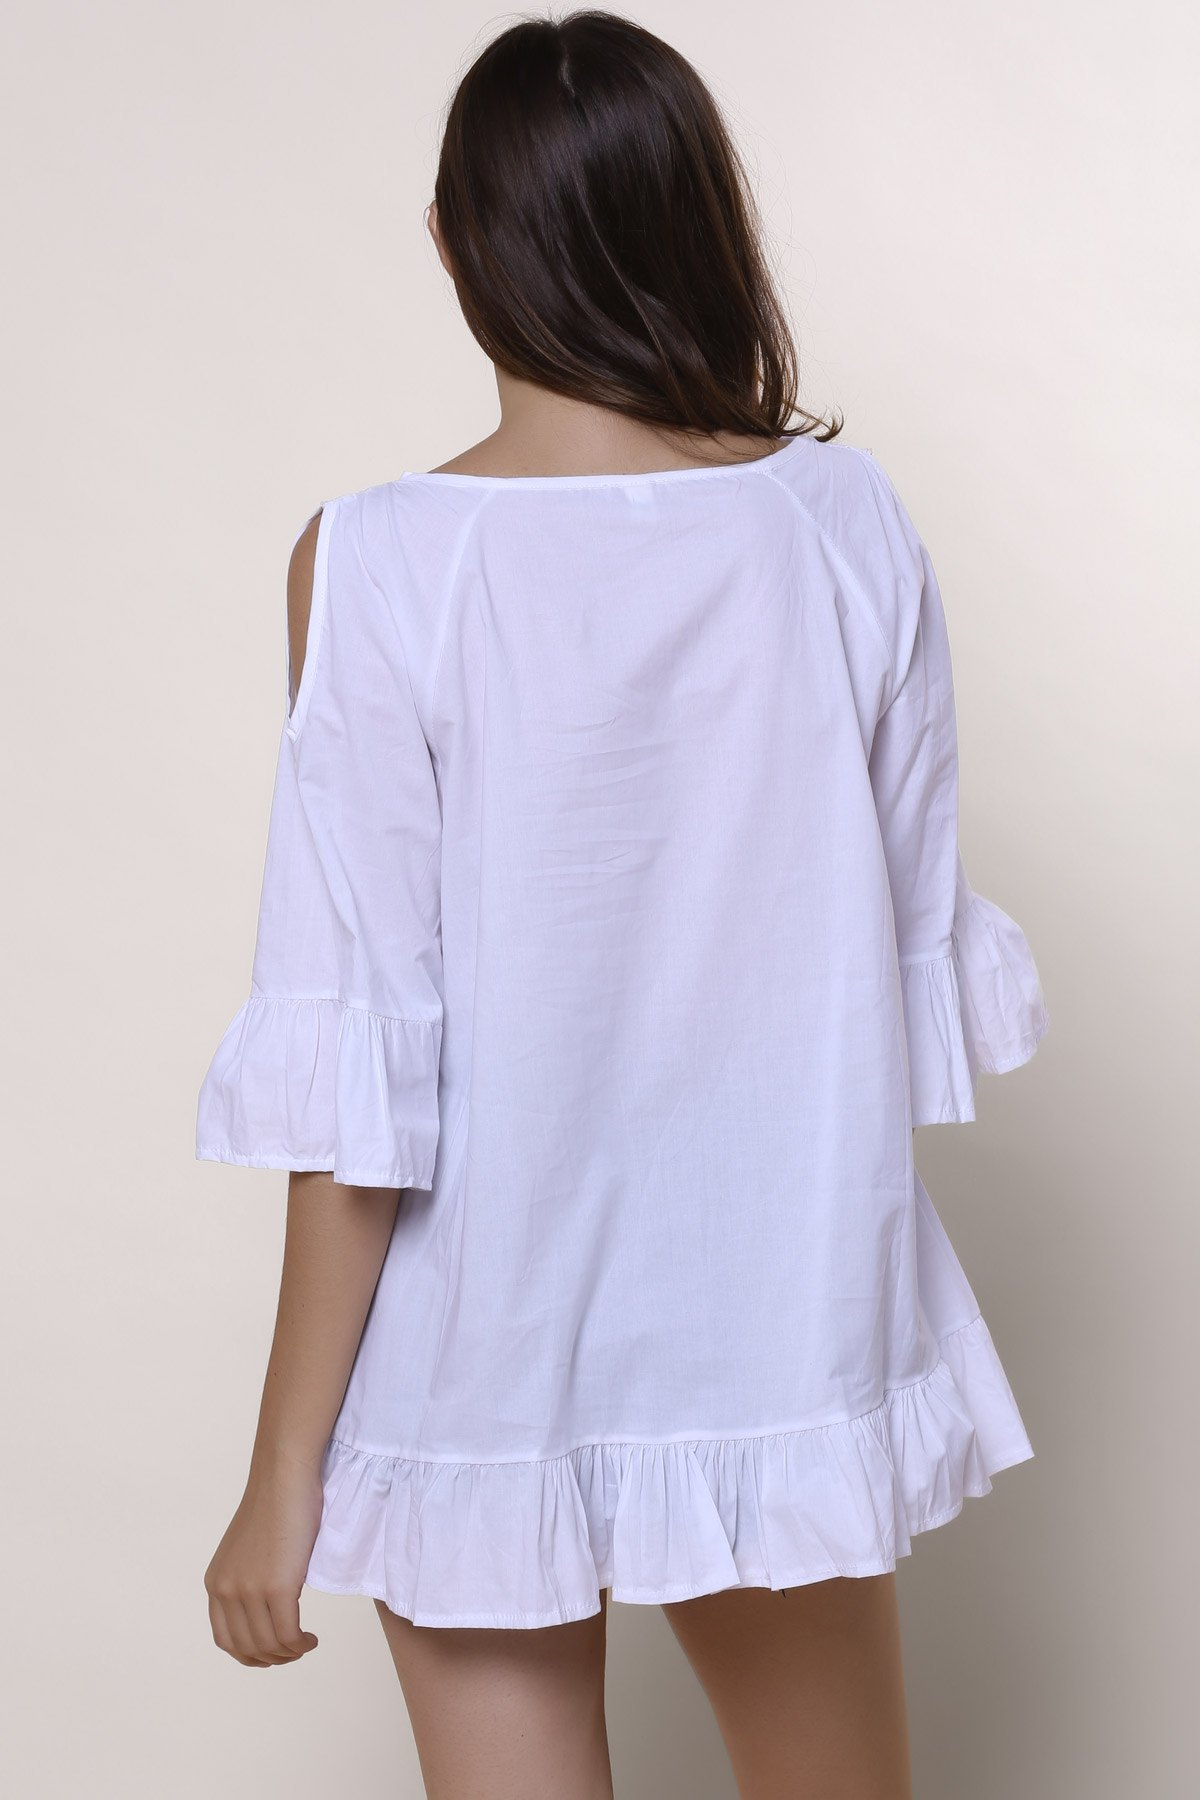 Sweet Solid Color Scoop Neck Ruffles 3/4 Sleeve Blouse For Women - WHITE 2XL